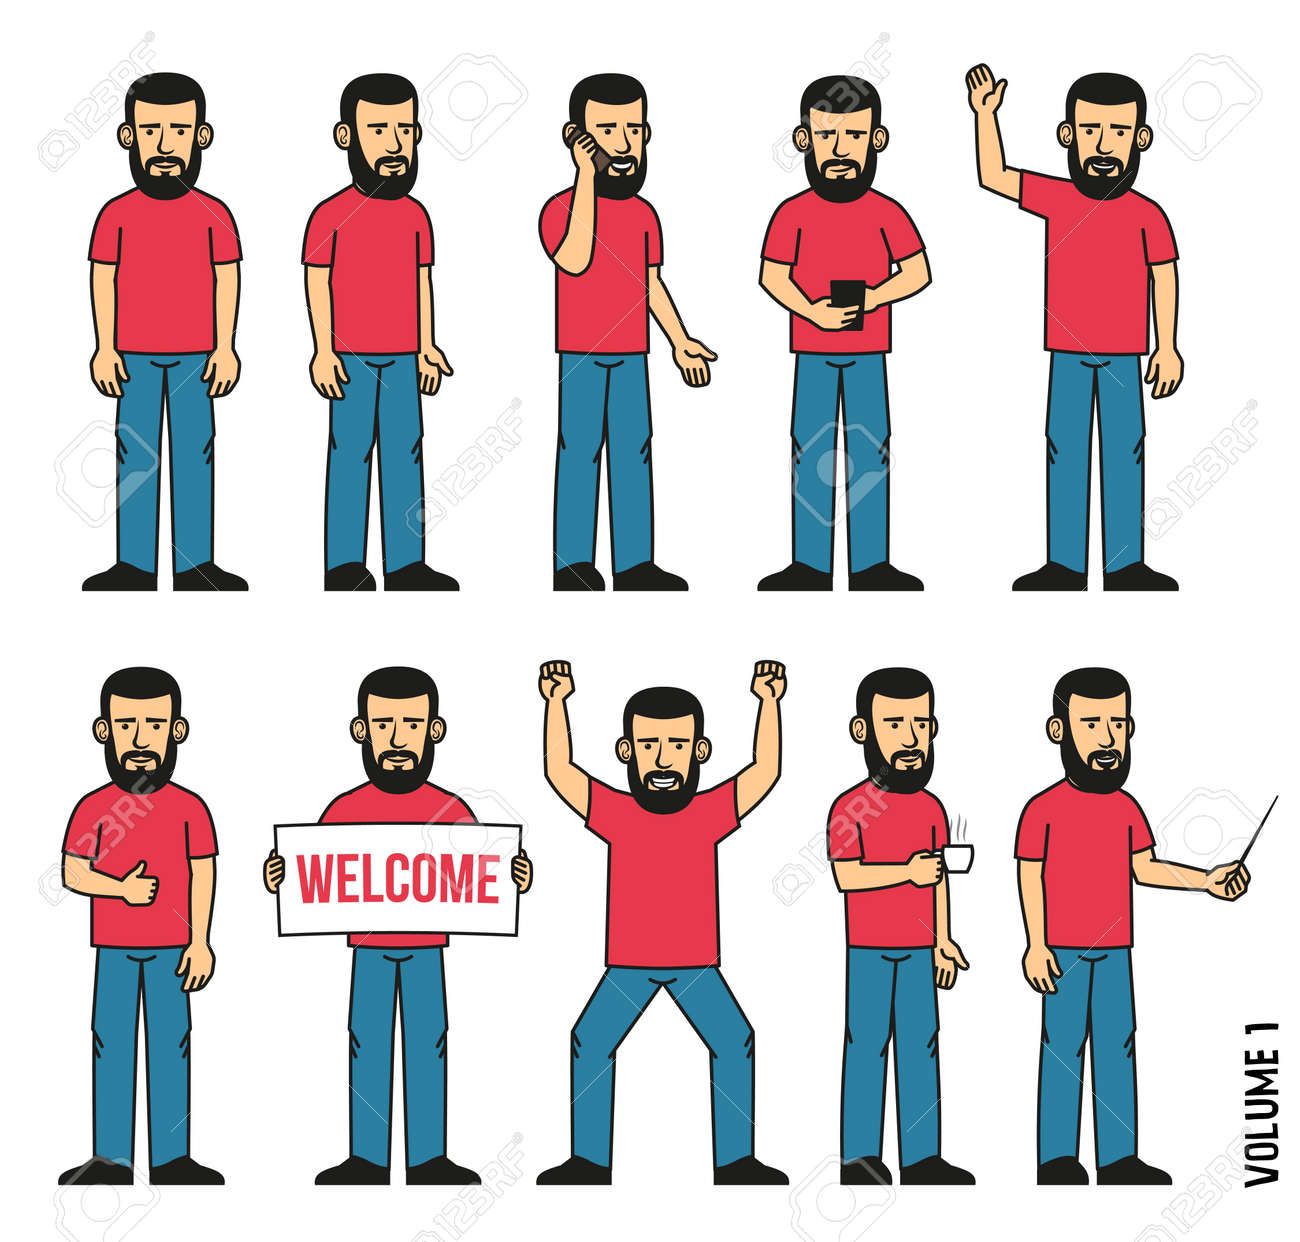 Set of 10 poses of  bearded man in  T-shirt and jeans. Person stands, uses  smartphone, welcomes, rejoices, drinks coffee and more. Can be disassembled into separate body parts. Stock Vector - 86143904